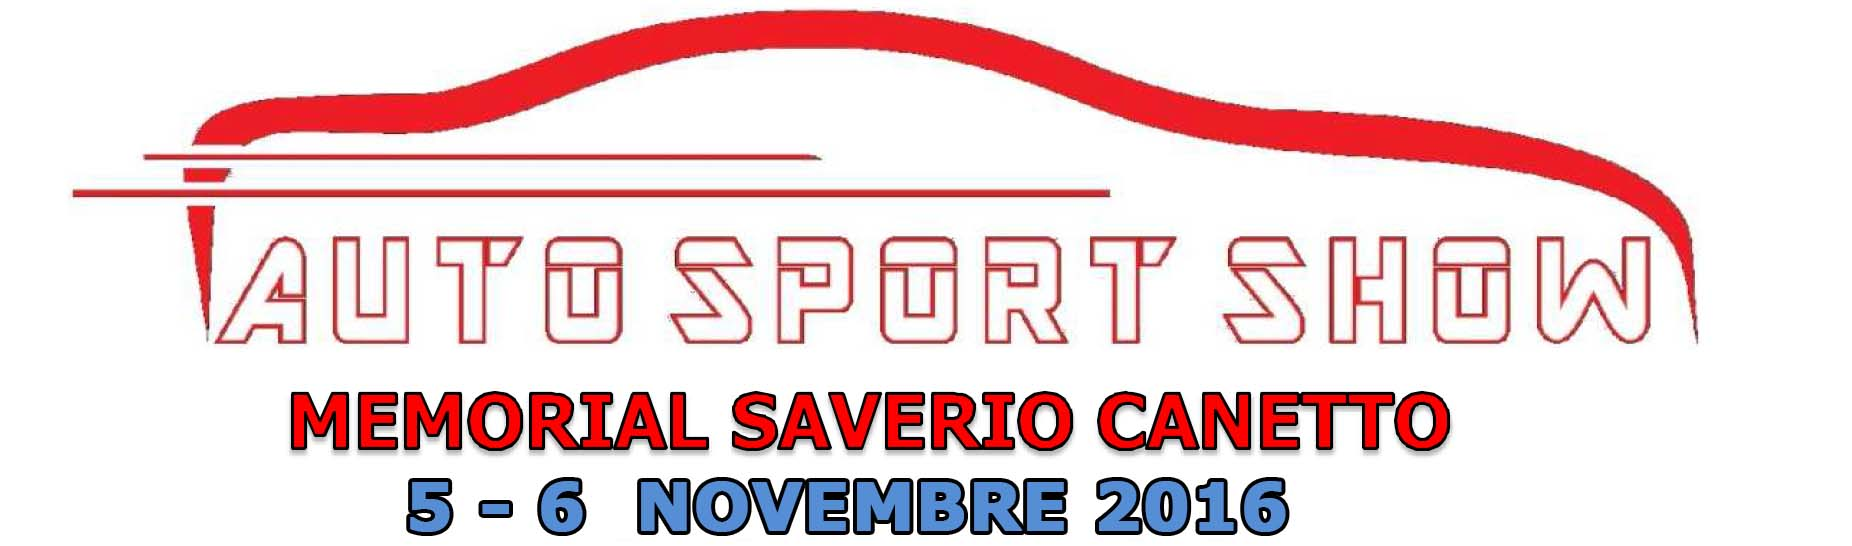 AUTO SPORT SHOW 2016 - MEMORIAL SAVERIO CANETTO